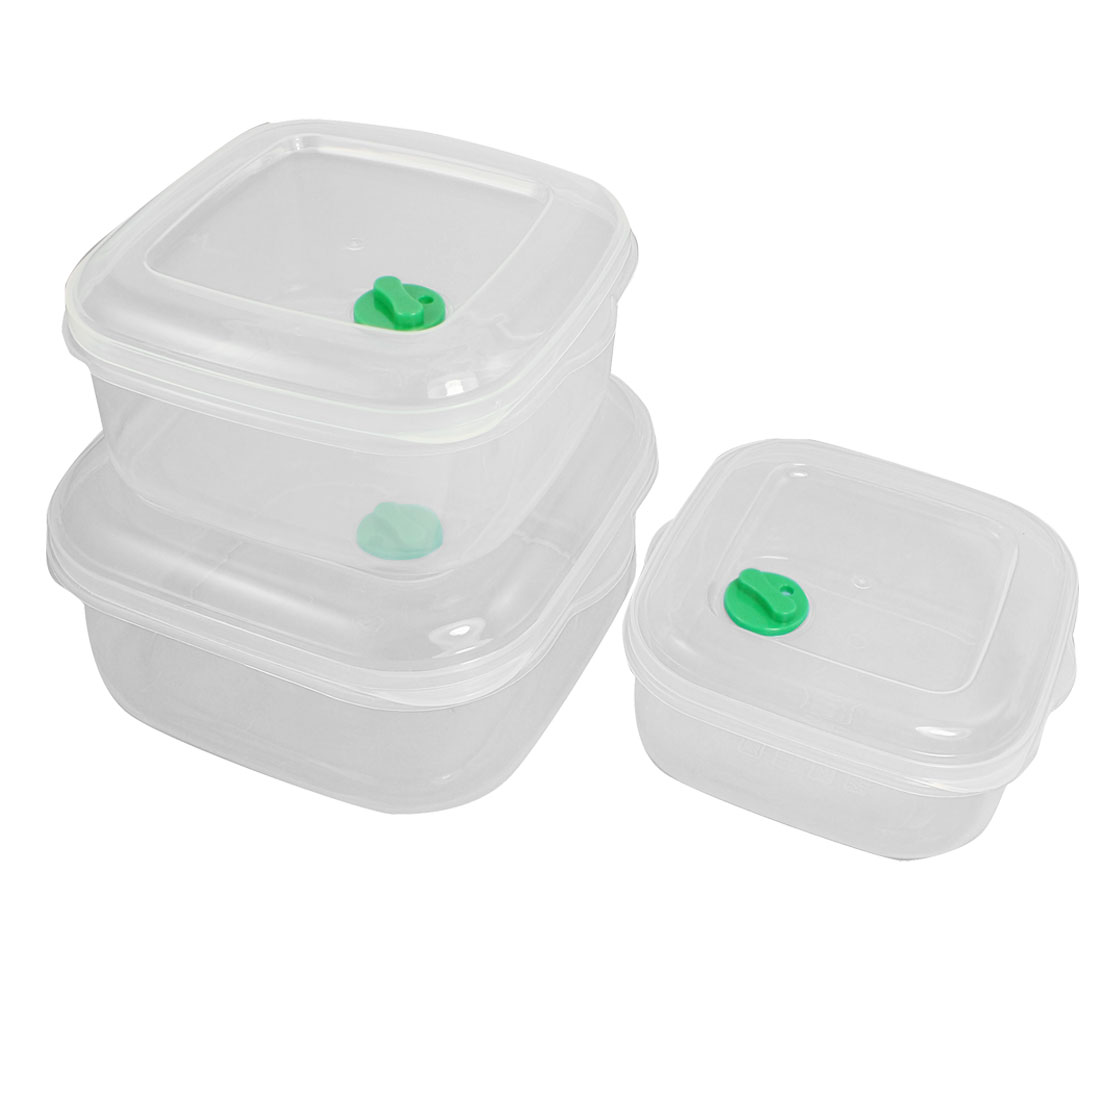 400ml 750ml 1200ml Microwave Safe Vented Lid Food Storage Container 3 in 1